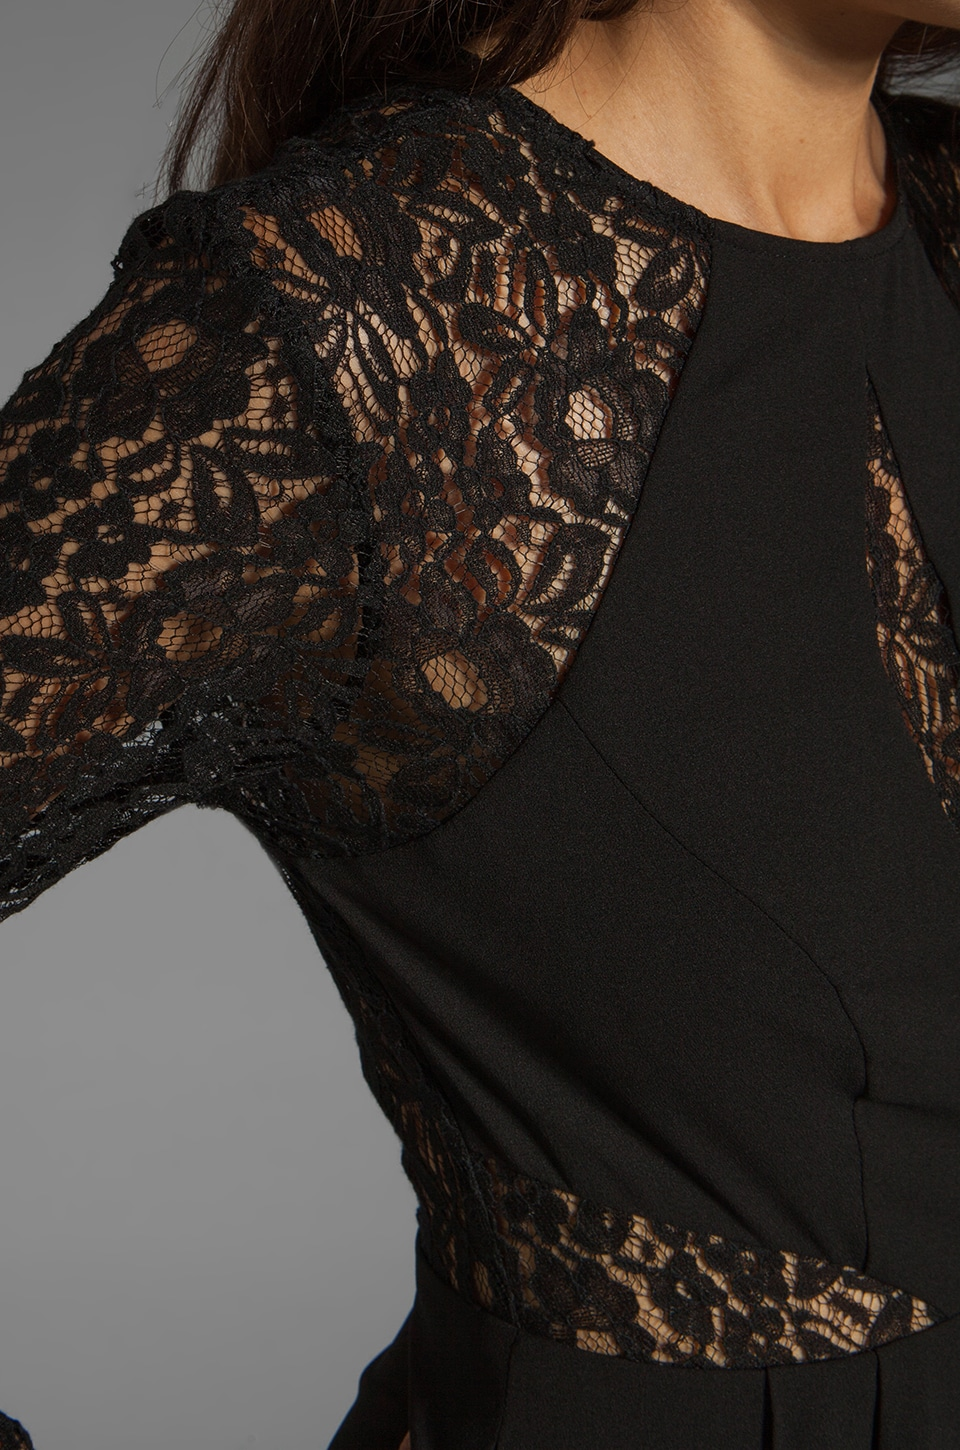 keepsake Walking on a Dream Long Sleeve Dress in Black/Black Lace